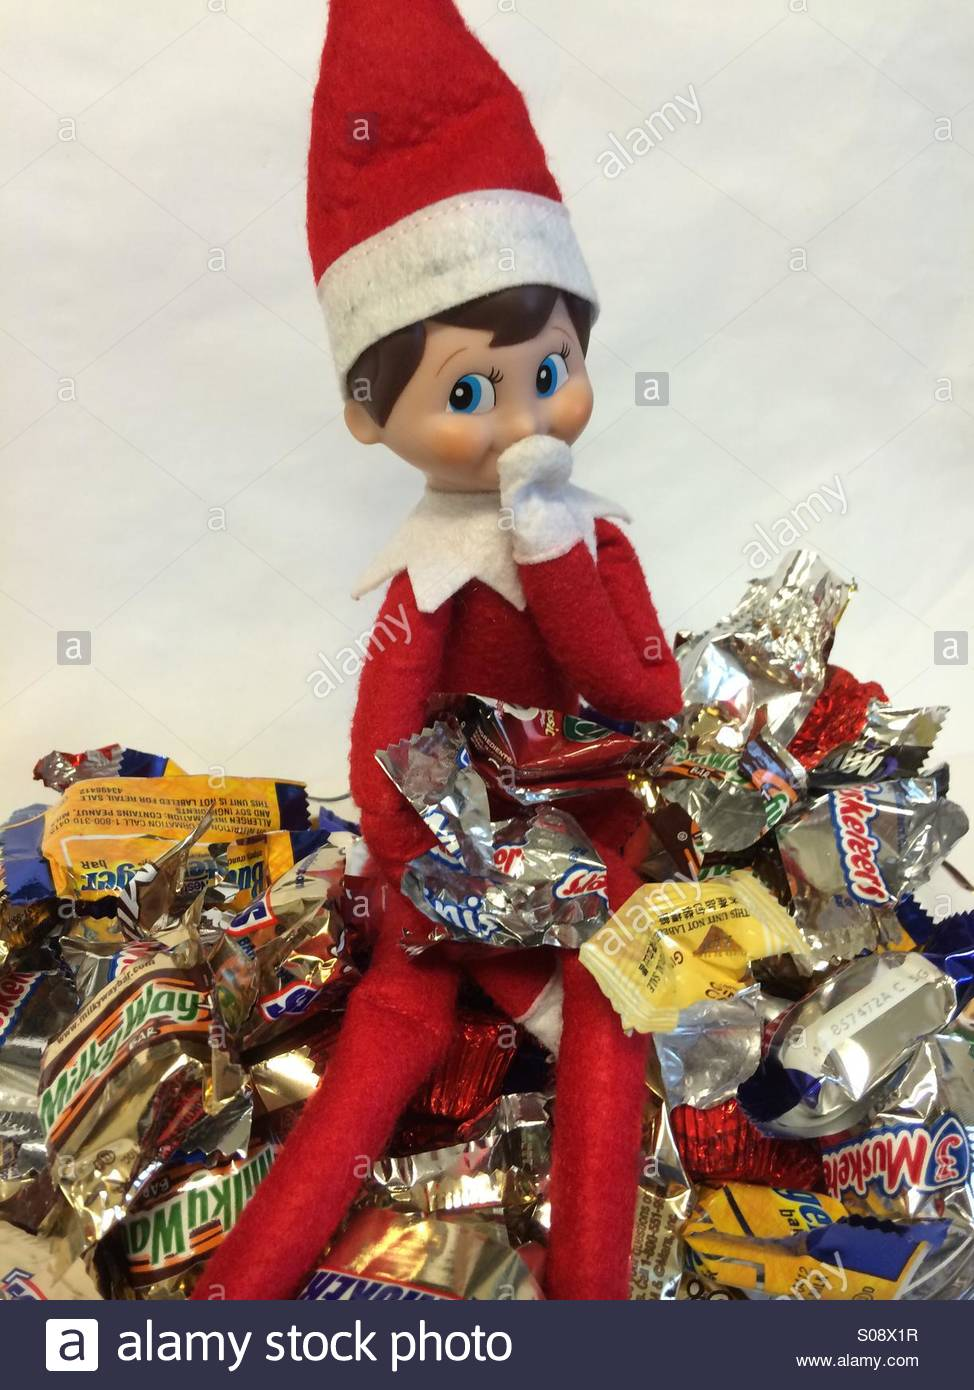 A naughty Christmas elf eats candy in a dish - Stock Image